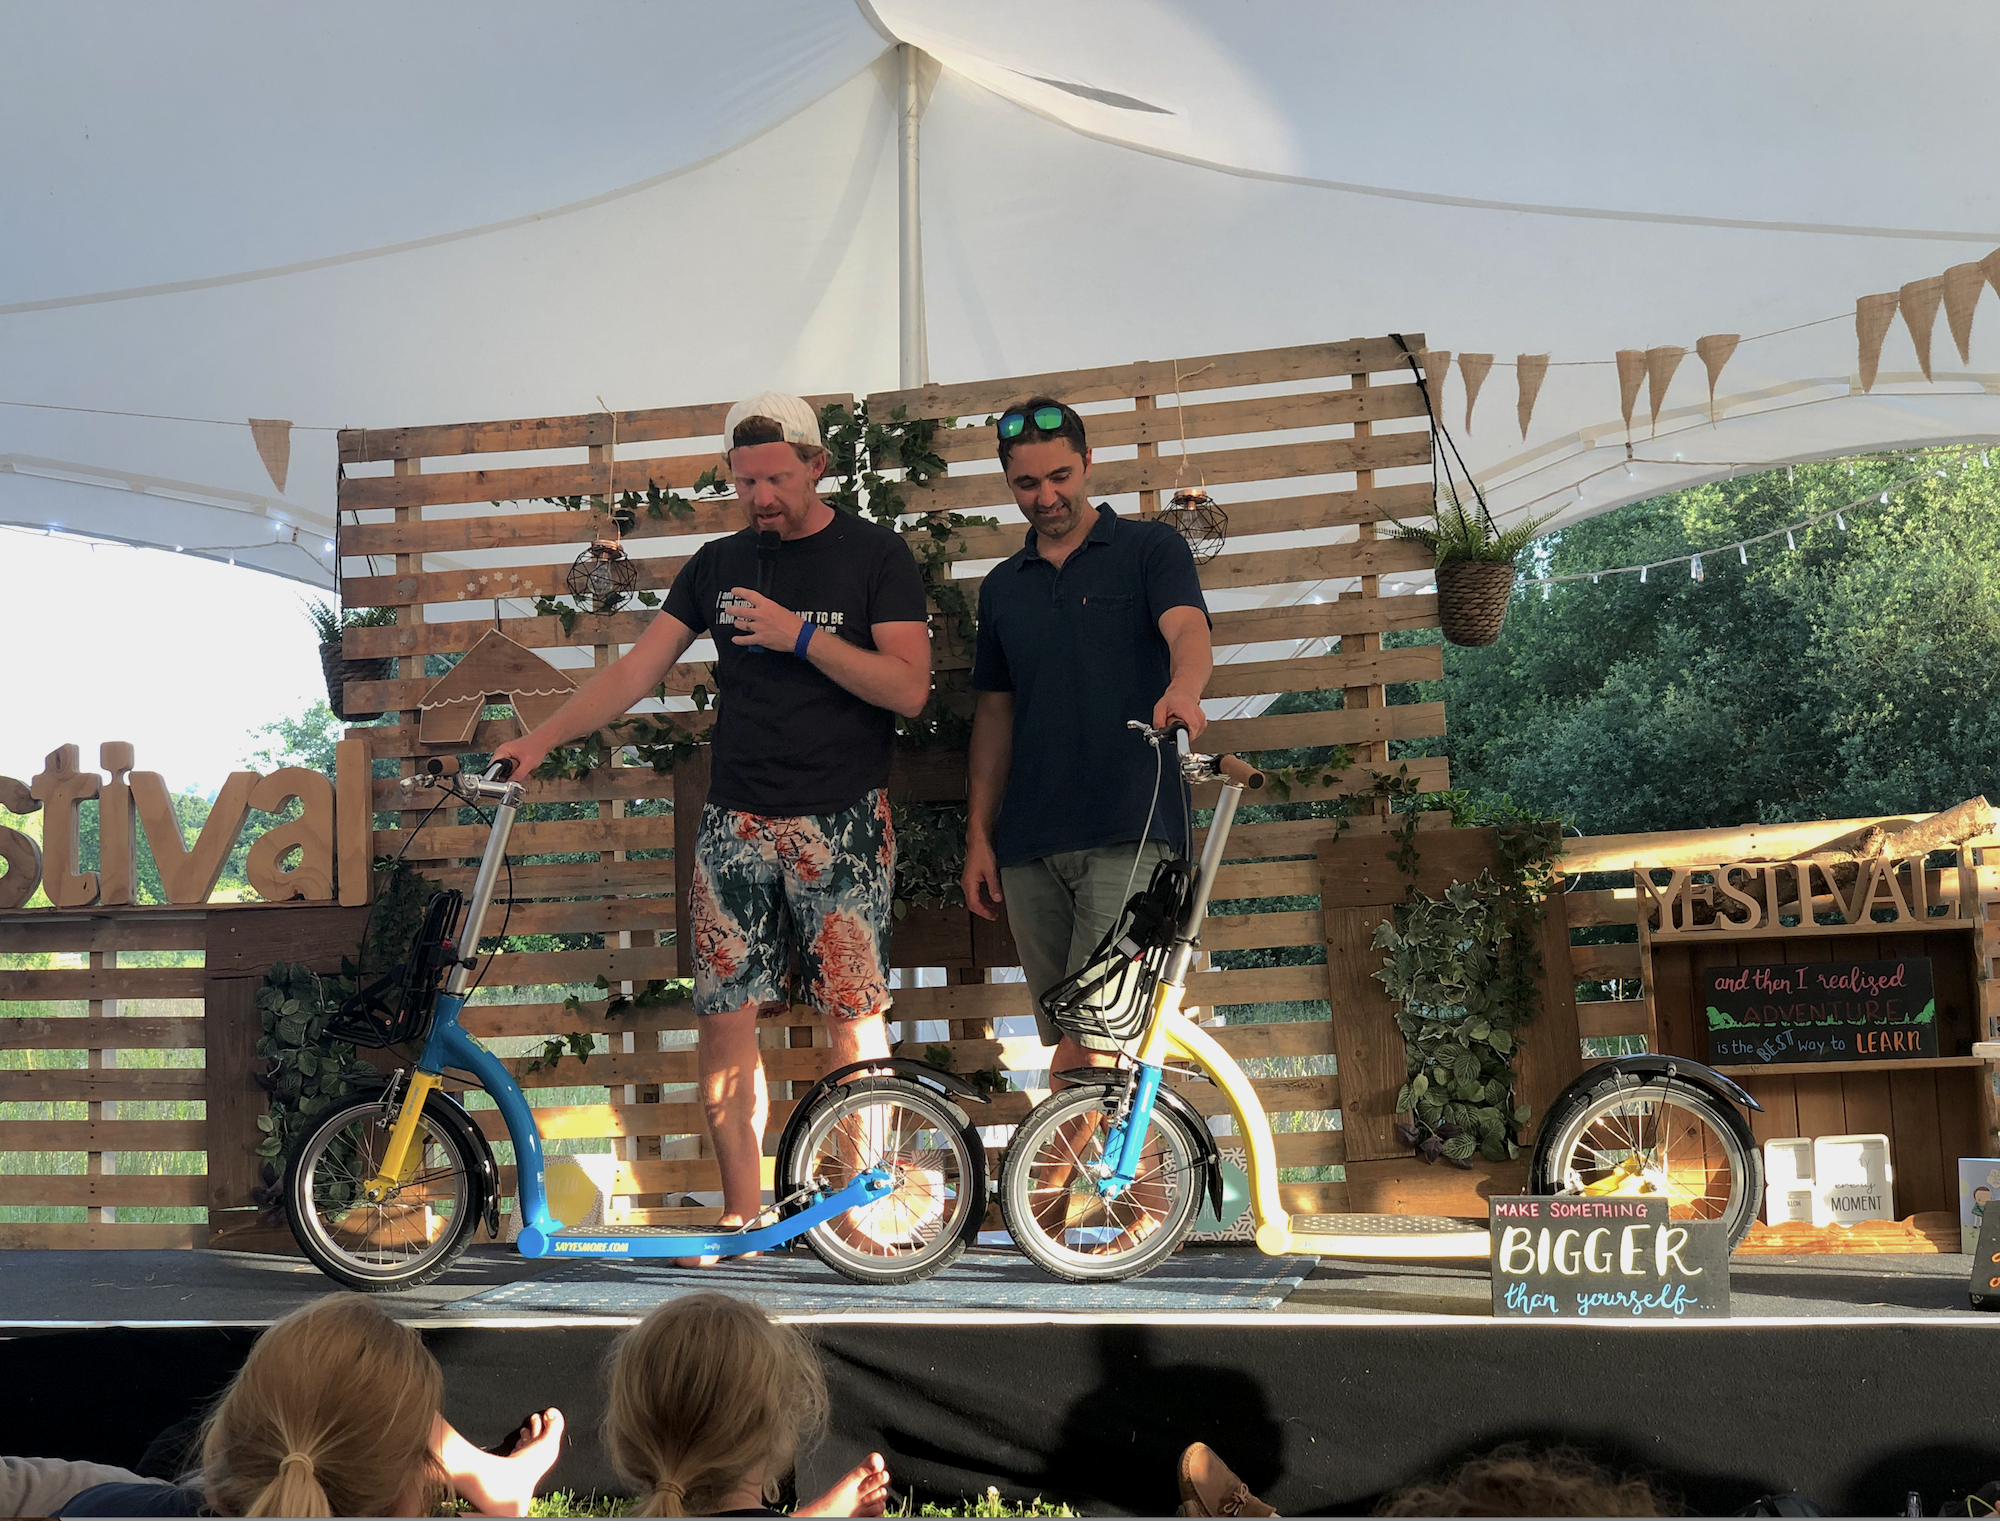 Jason Iftakhar of Swifty Scooters with Dave C at Camp Yestival, with Tortoise and Hare!